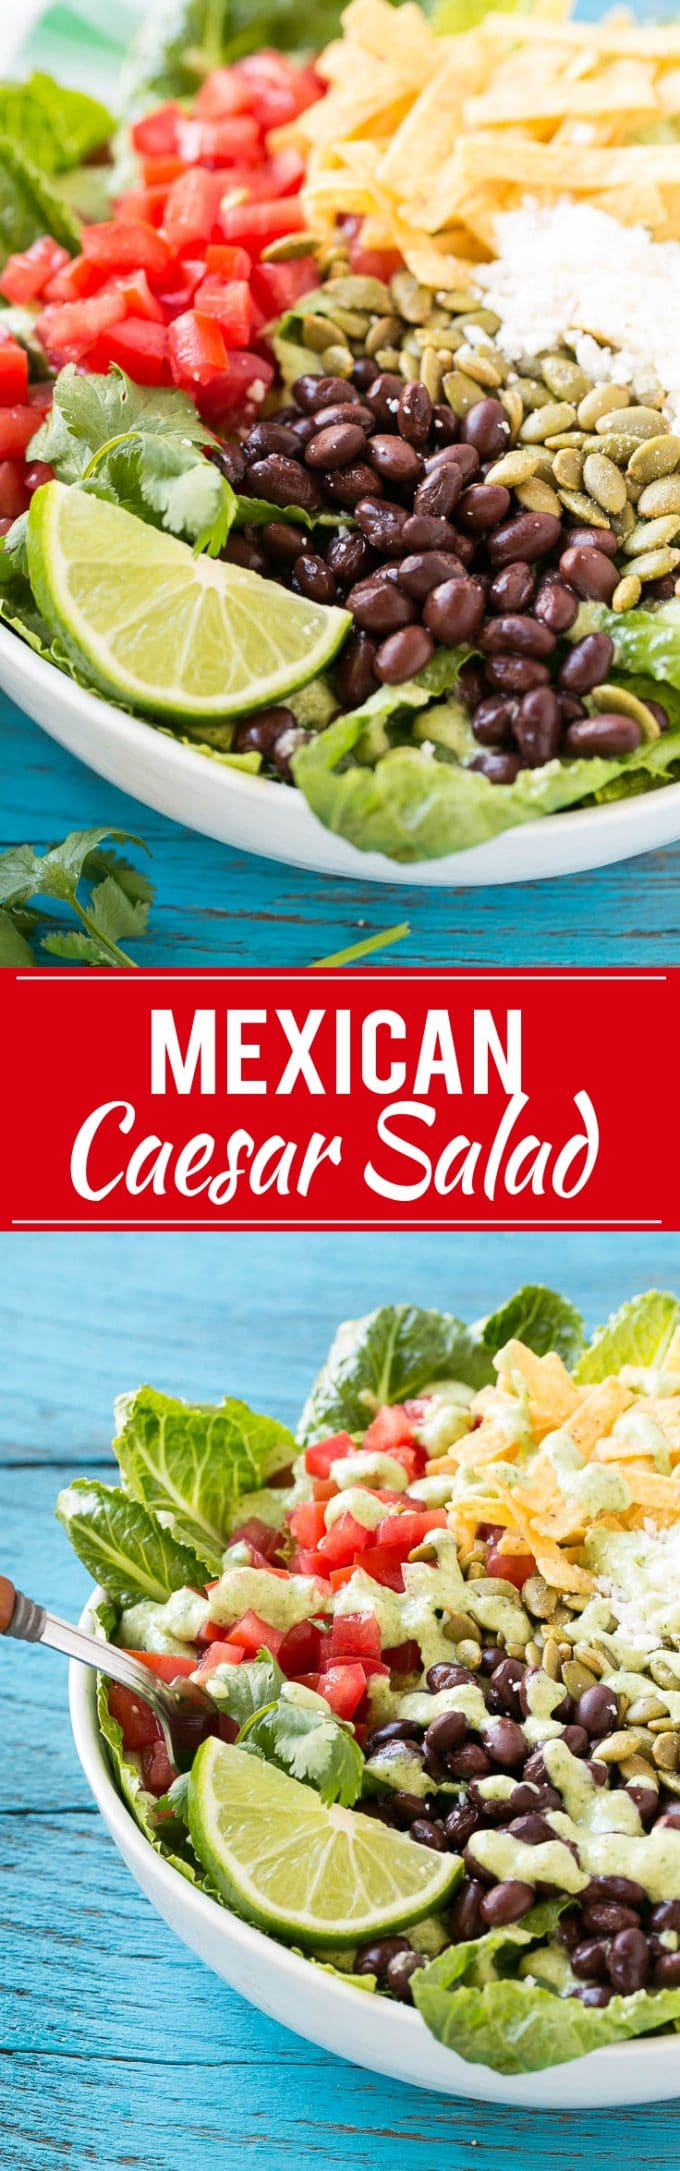 Mexican Caesar Salad Recipe | Caesar Salad | Mexican Salad #salad #beans #lunch #dinner #dinneratthezoo